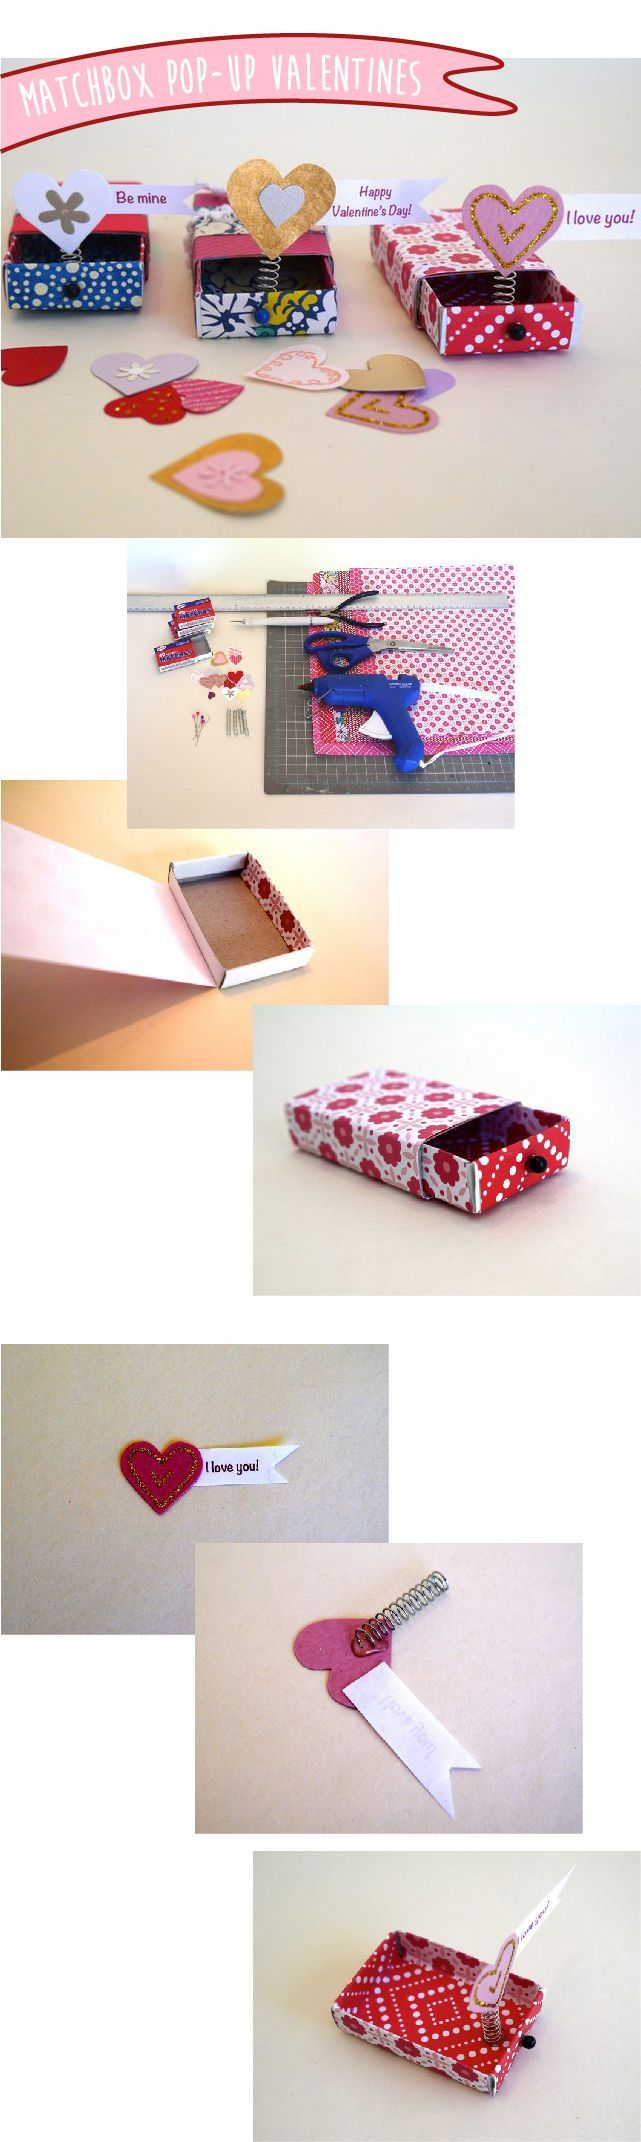 Clever idea! Say Happy Valentine's Day with a homemade pop-up Valentine out of matchboxes. How-to  instructions here: www.ehow.com/...